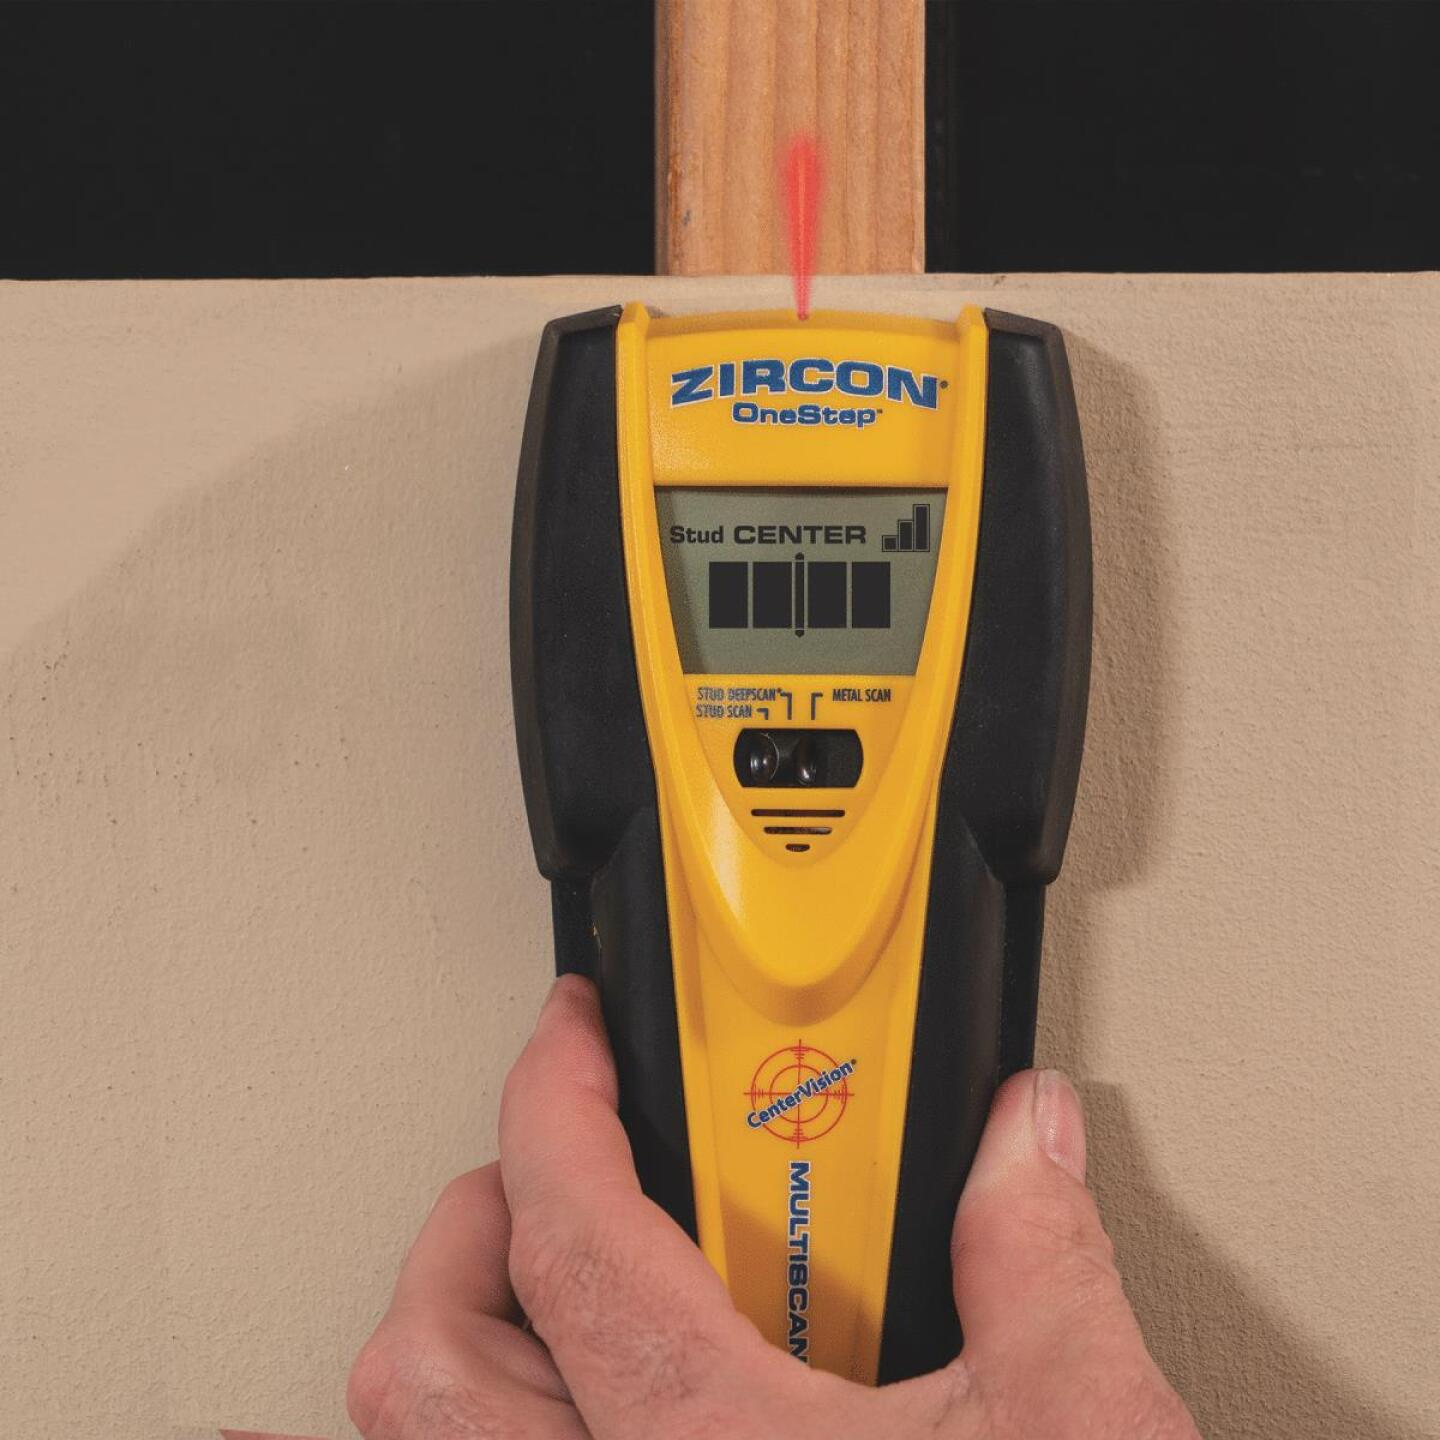 Zircon i520 One Step Electronic Stud Finder Image 3